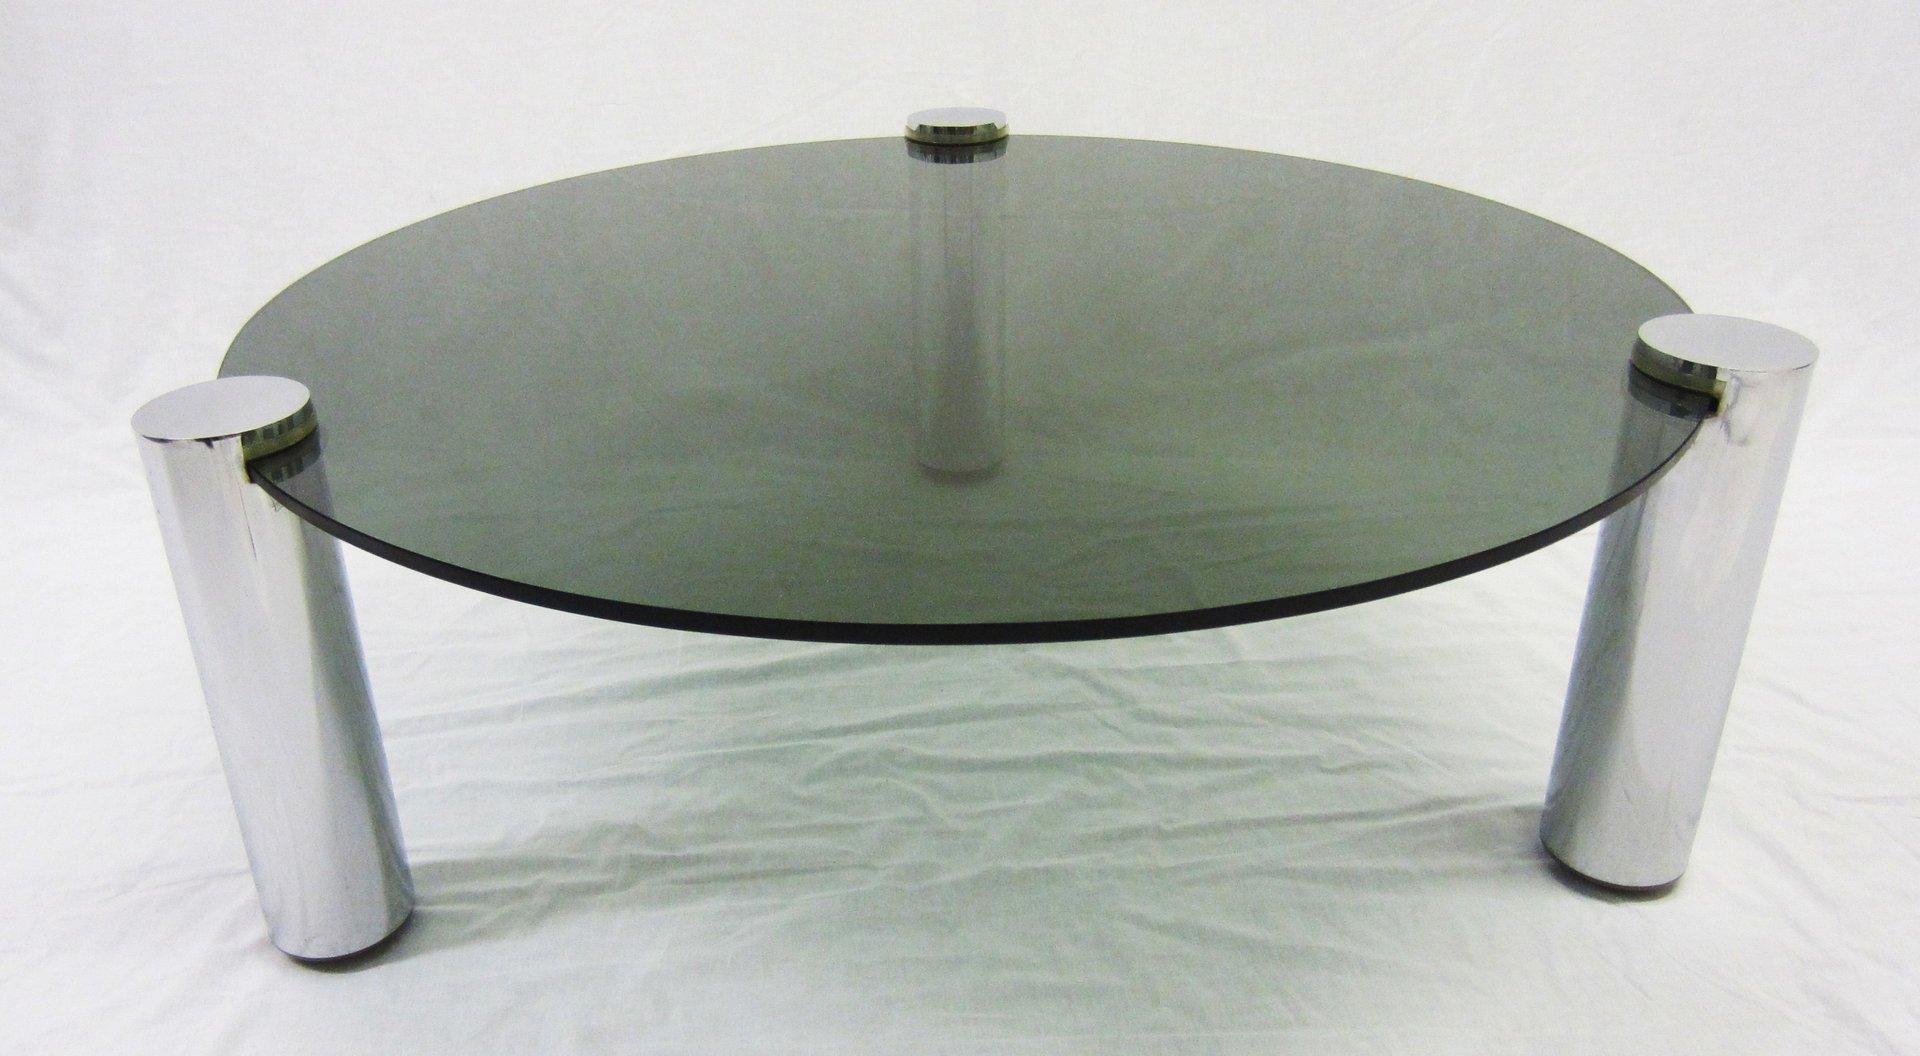 Round Glass and Chrome Coffee Table from Pieff 1960s for sale at